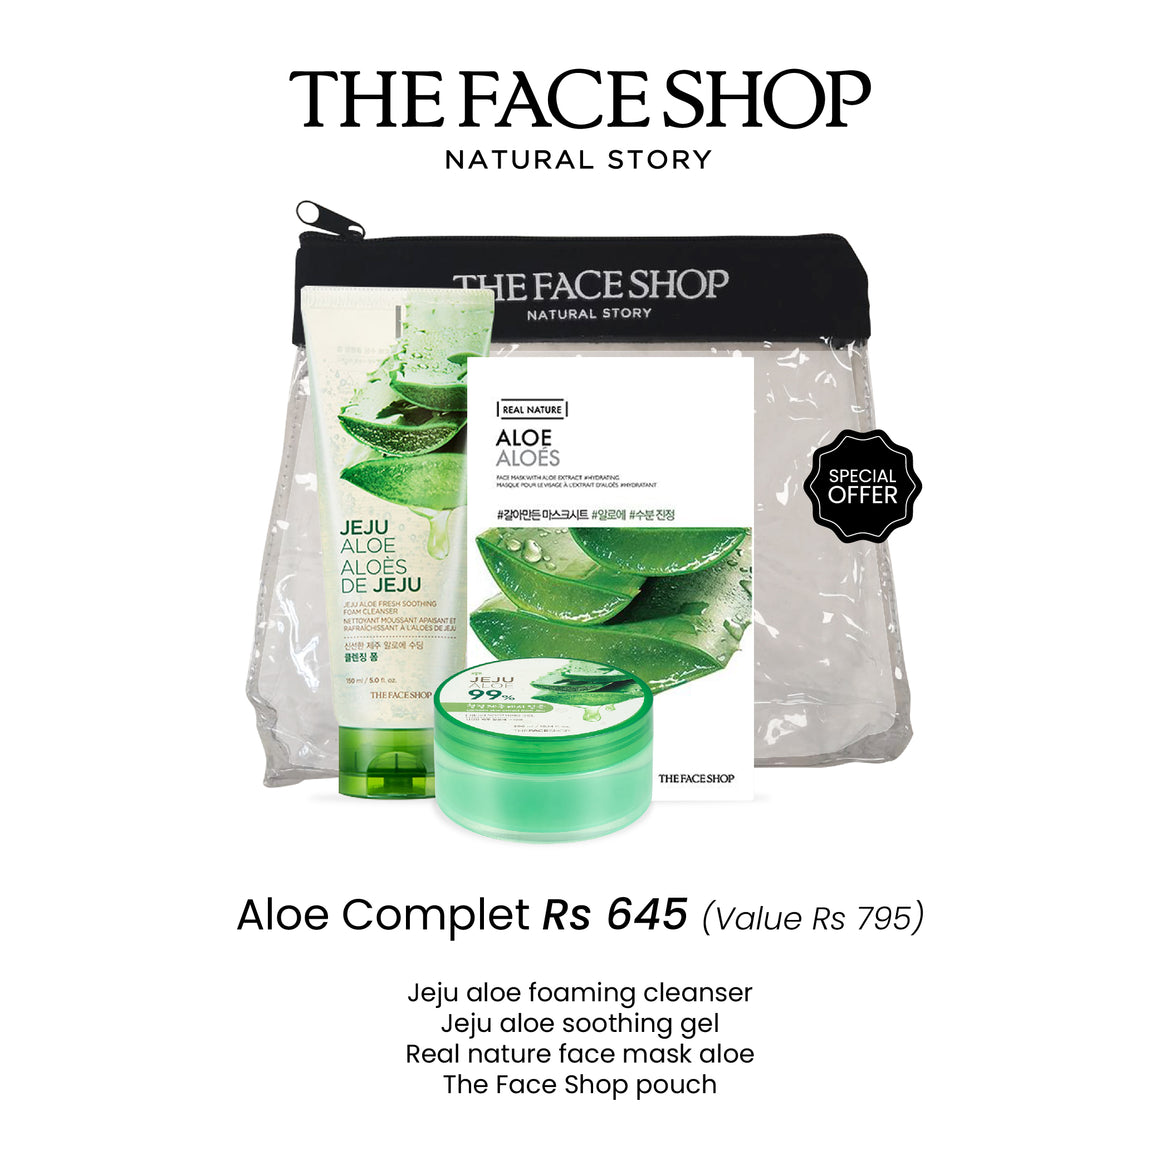 Aloe Set (Normal price Rs 645)